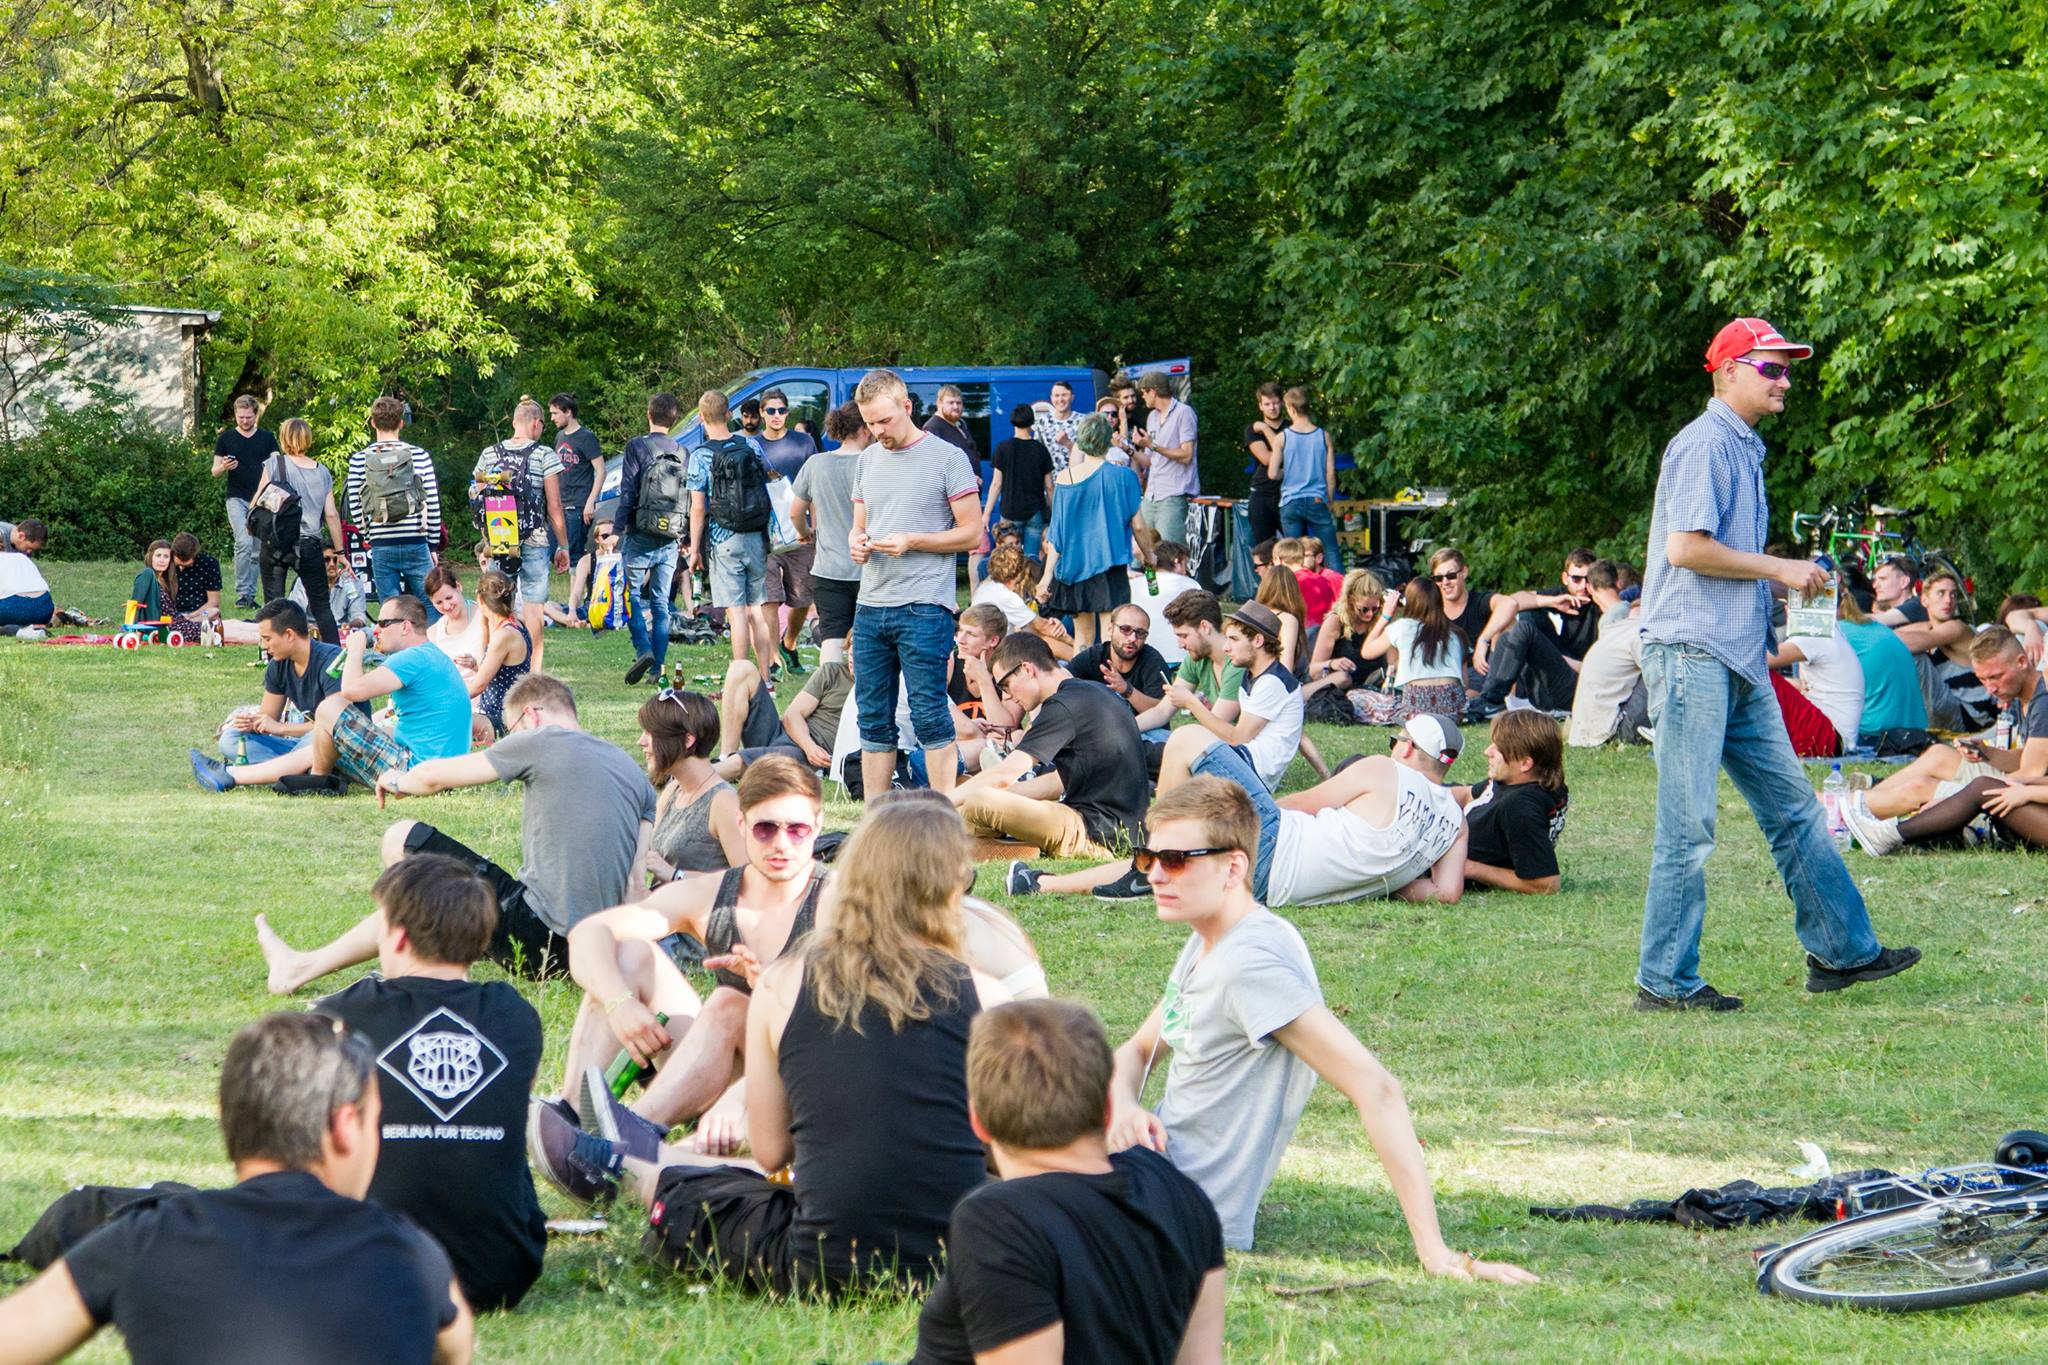 storkower-tag-illegales-open-air